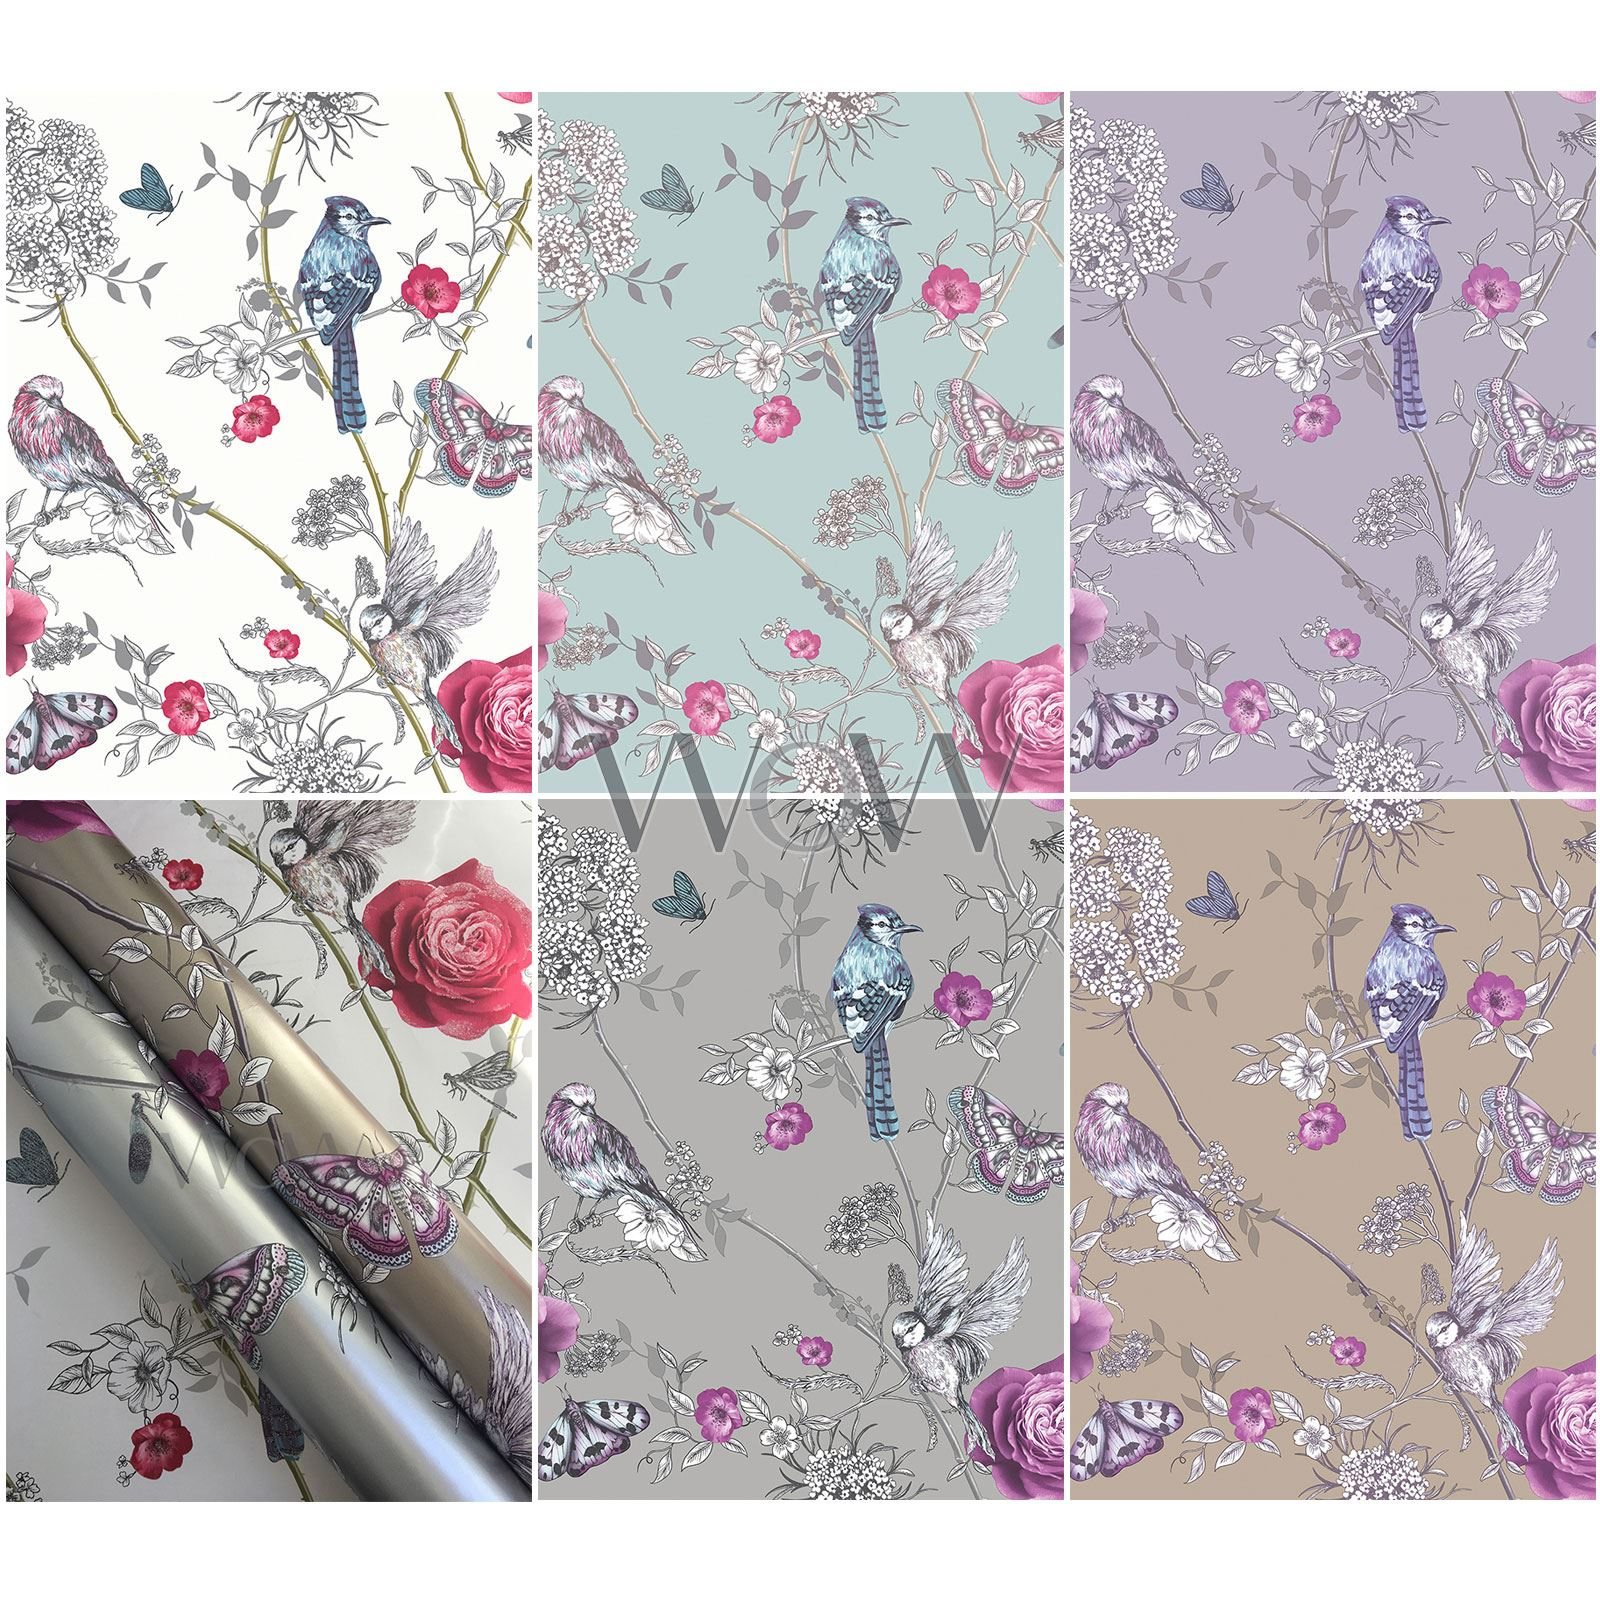 Arthouse Fantasia Paradise Garden Wallpaper Glitter Metallic Flowers Birds Ebay